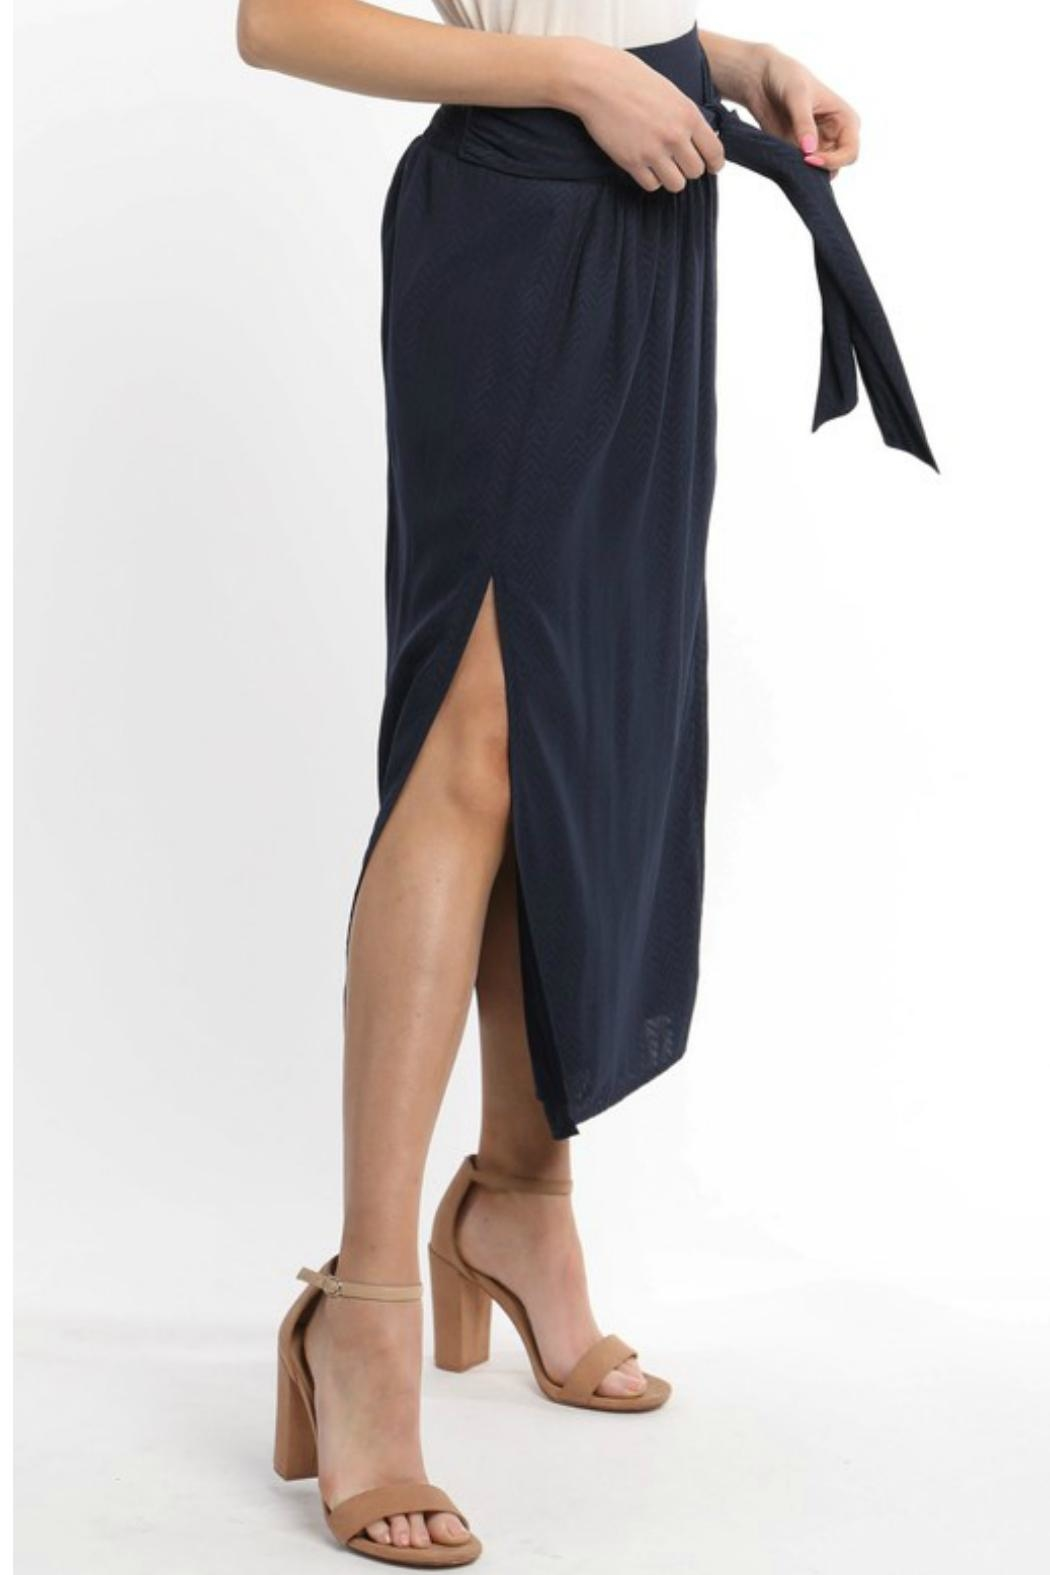 Skies Are Blue Front Slit Midi-Skirt - Side Cropped Image